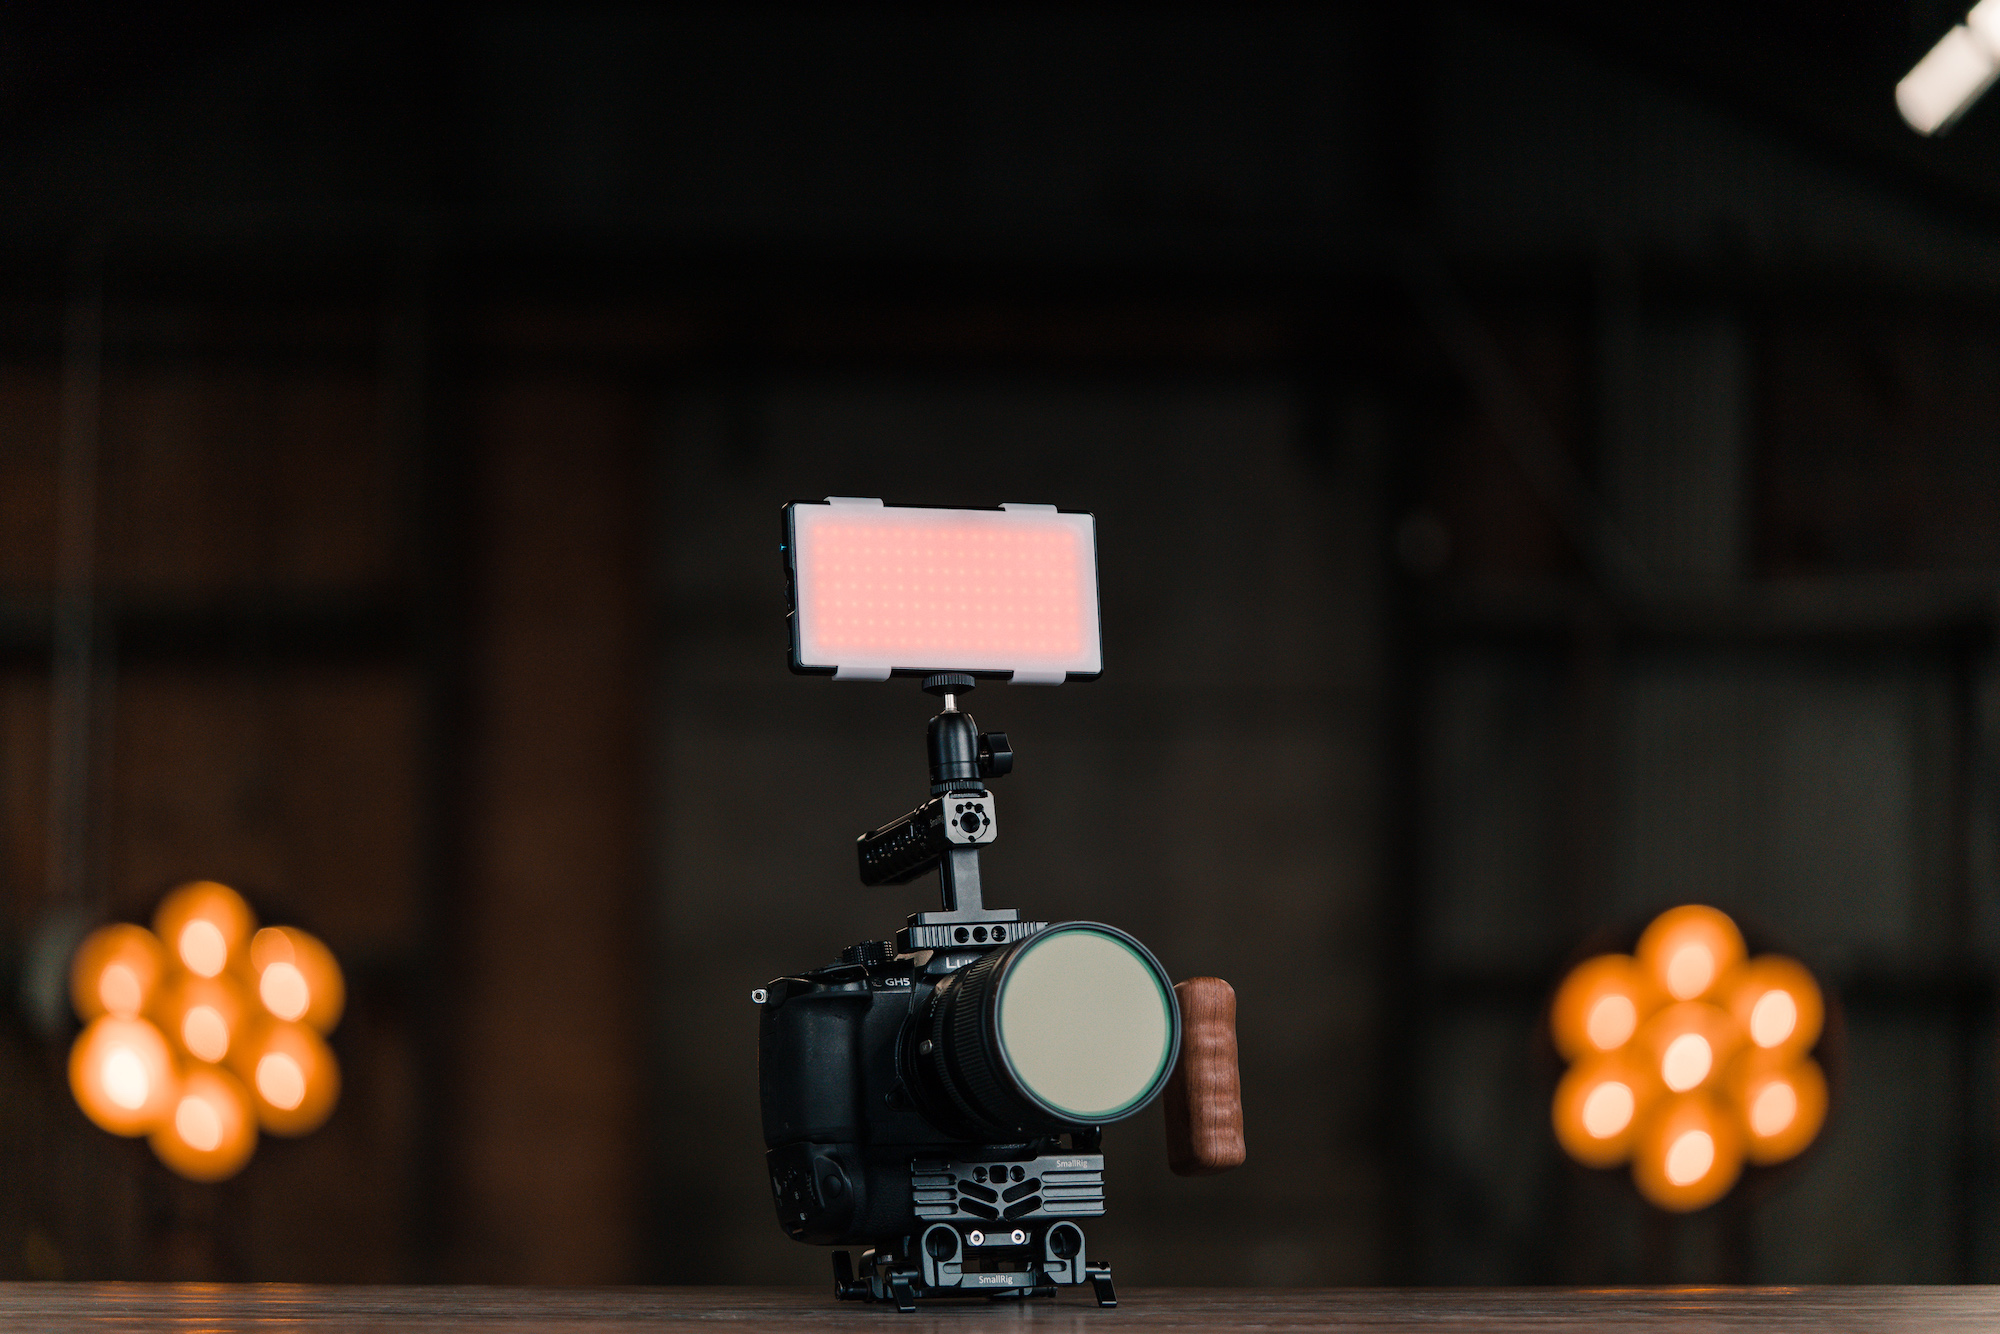 panel pro attached to the top of a dslr camera